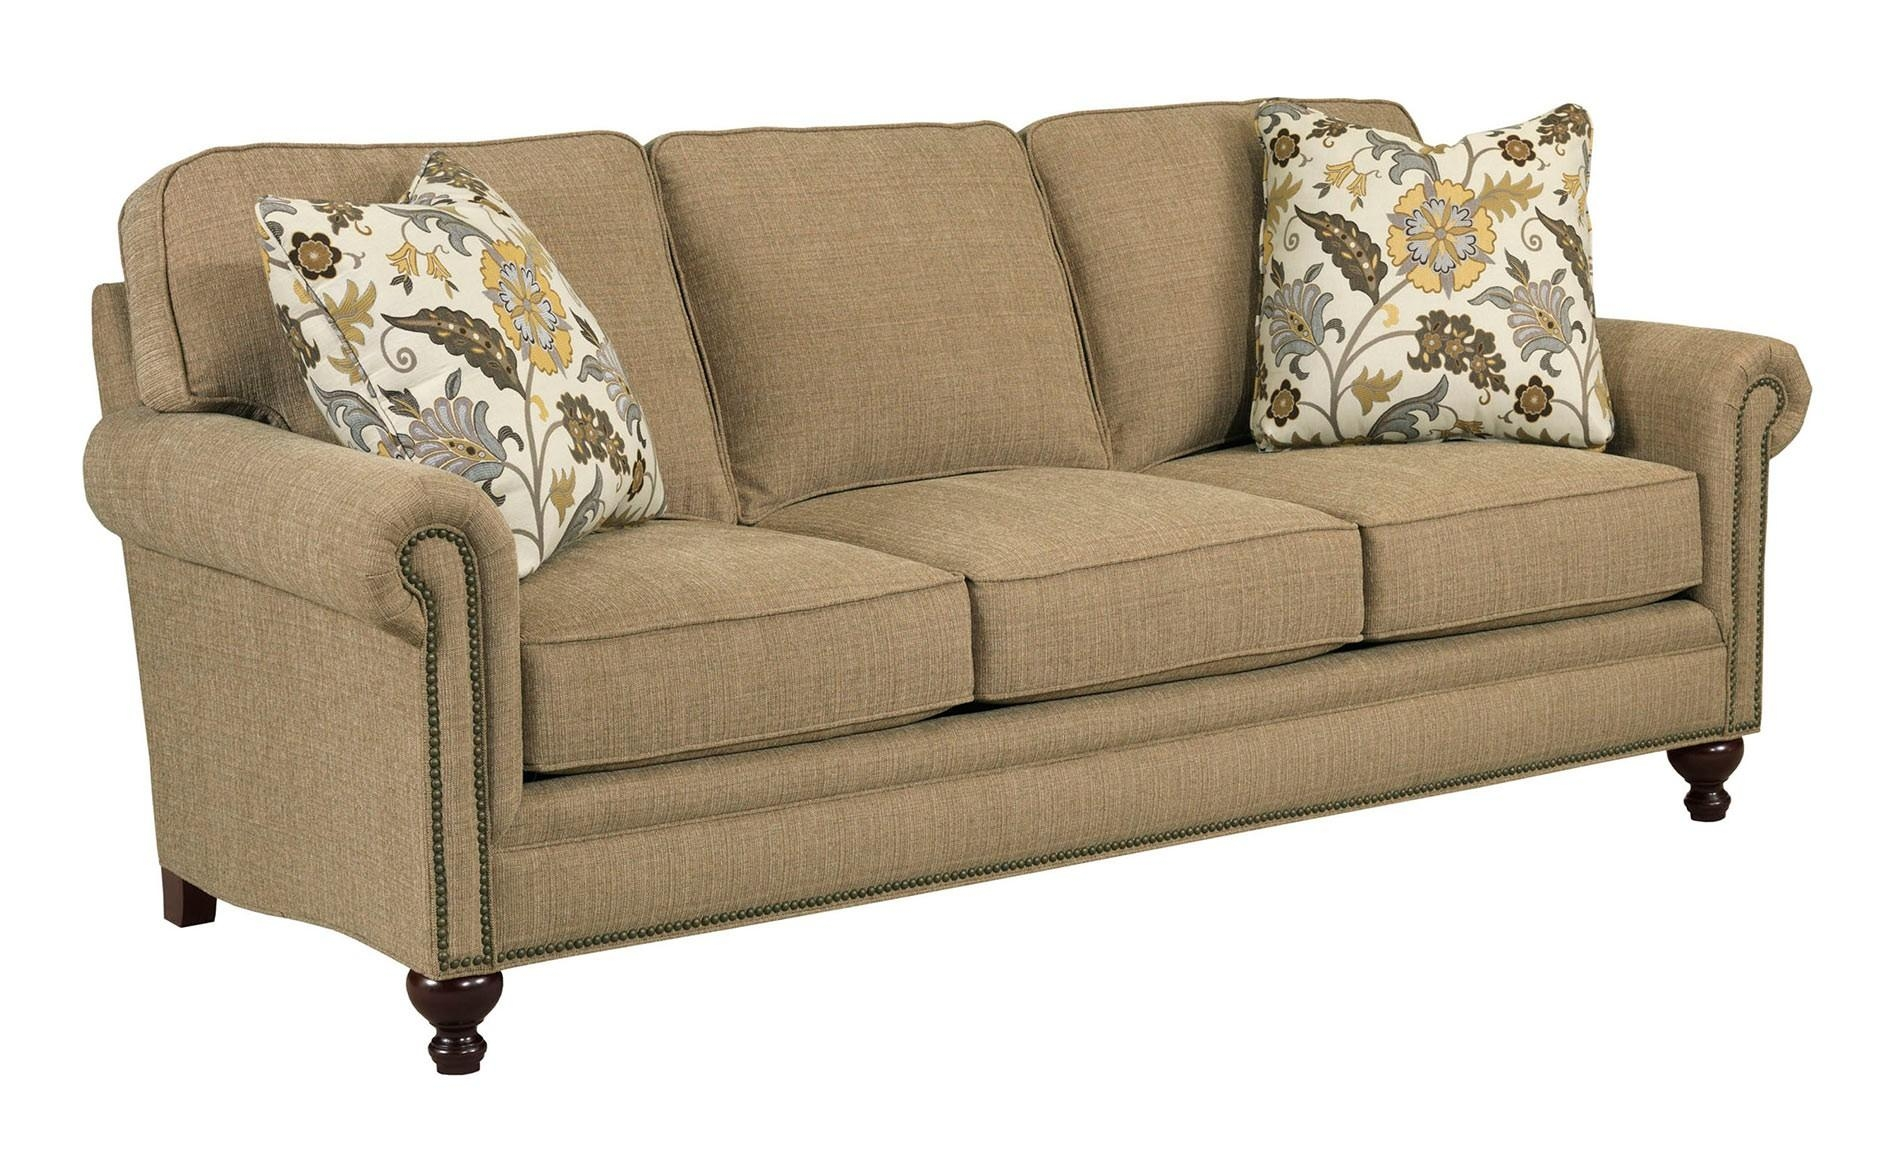 Broyhill Larissa Sofa | Sofa Gallery | Kengire Pertaining To Broyhill Larissa Sofas (Image 8 of 20)